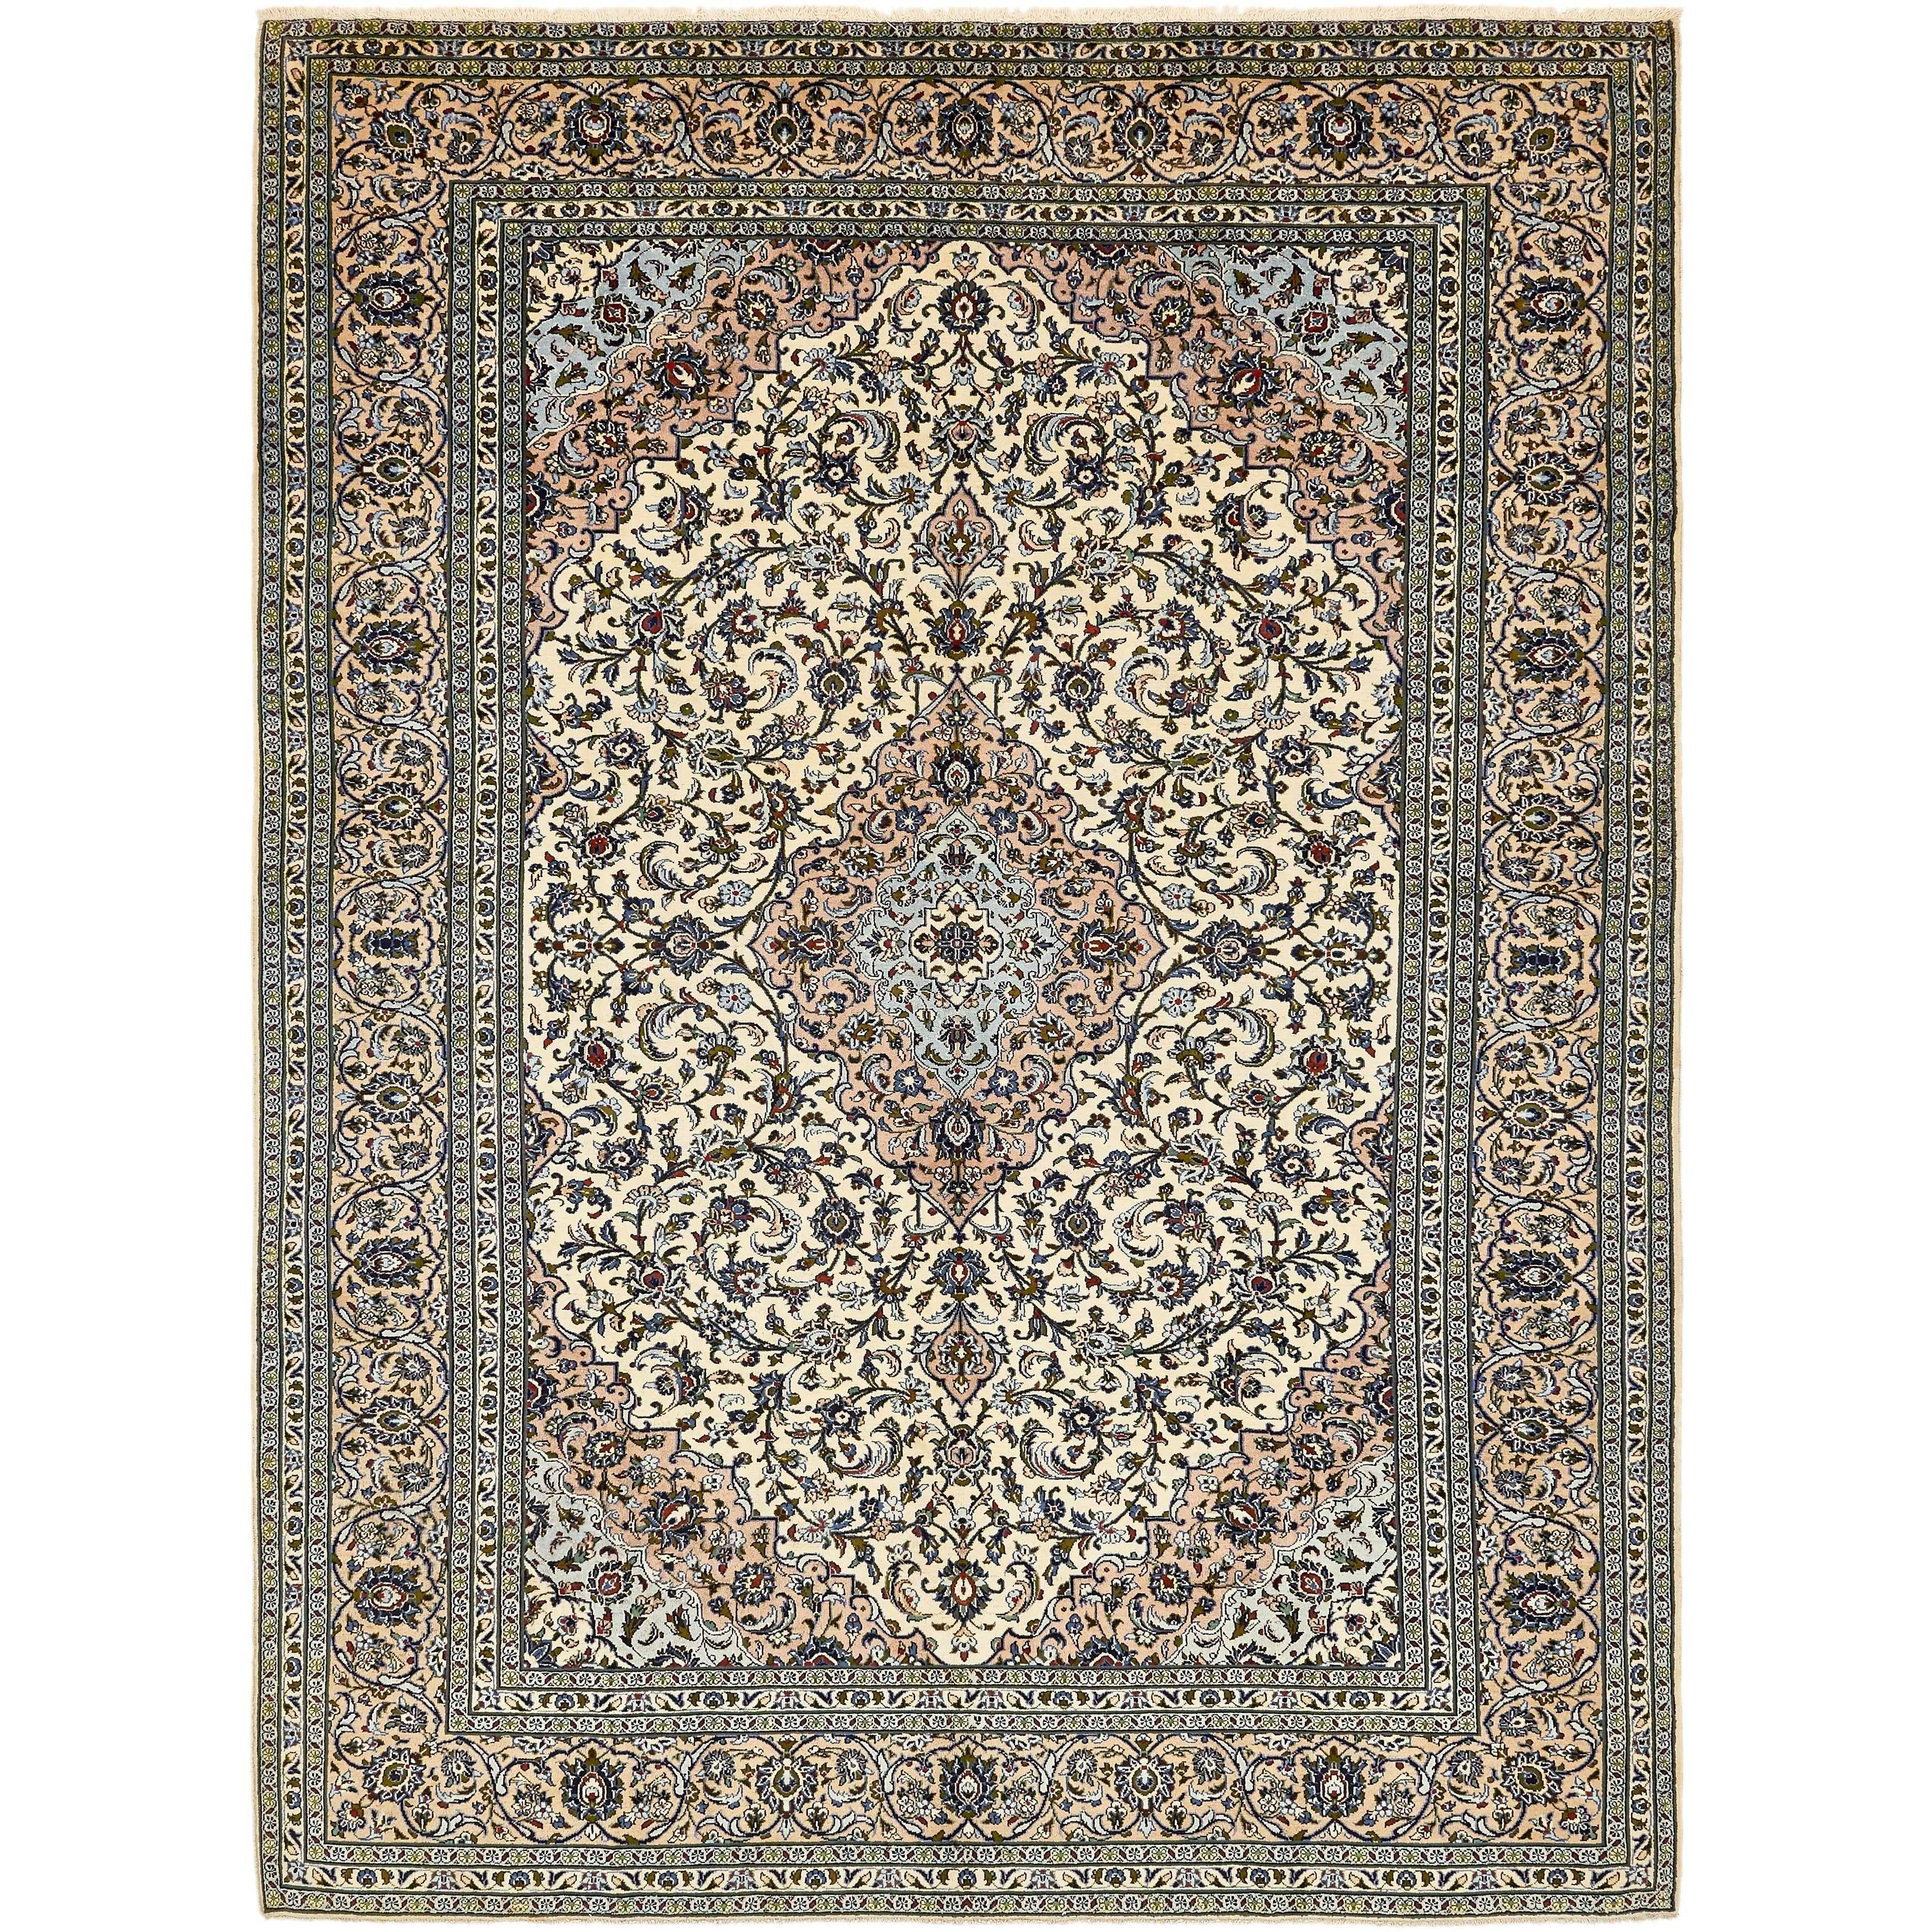 Hand Knotted Kashan Semi Antique Wool Area Rug - 9 7 x 13 (Ivory - 9 7 x 13)